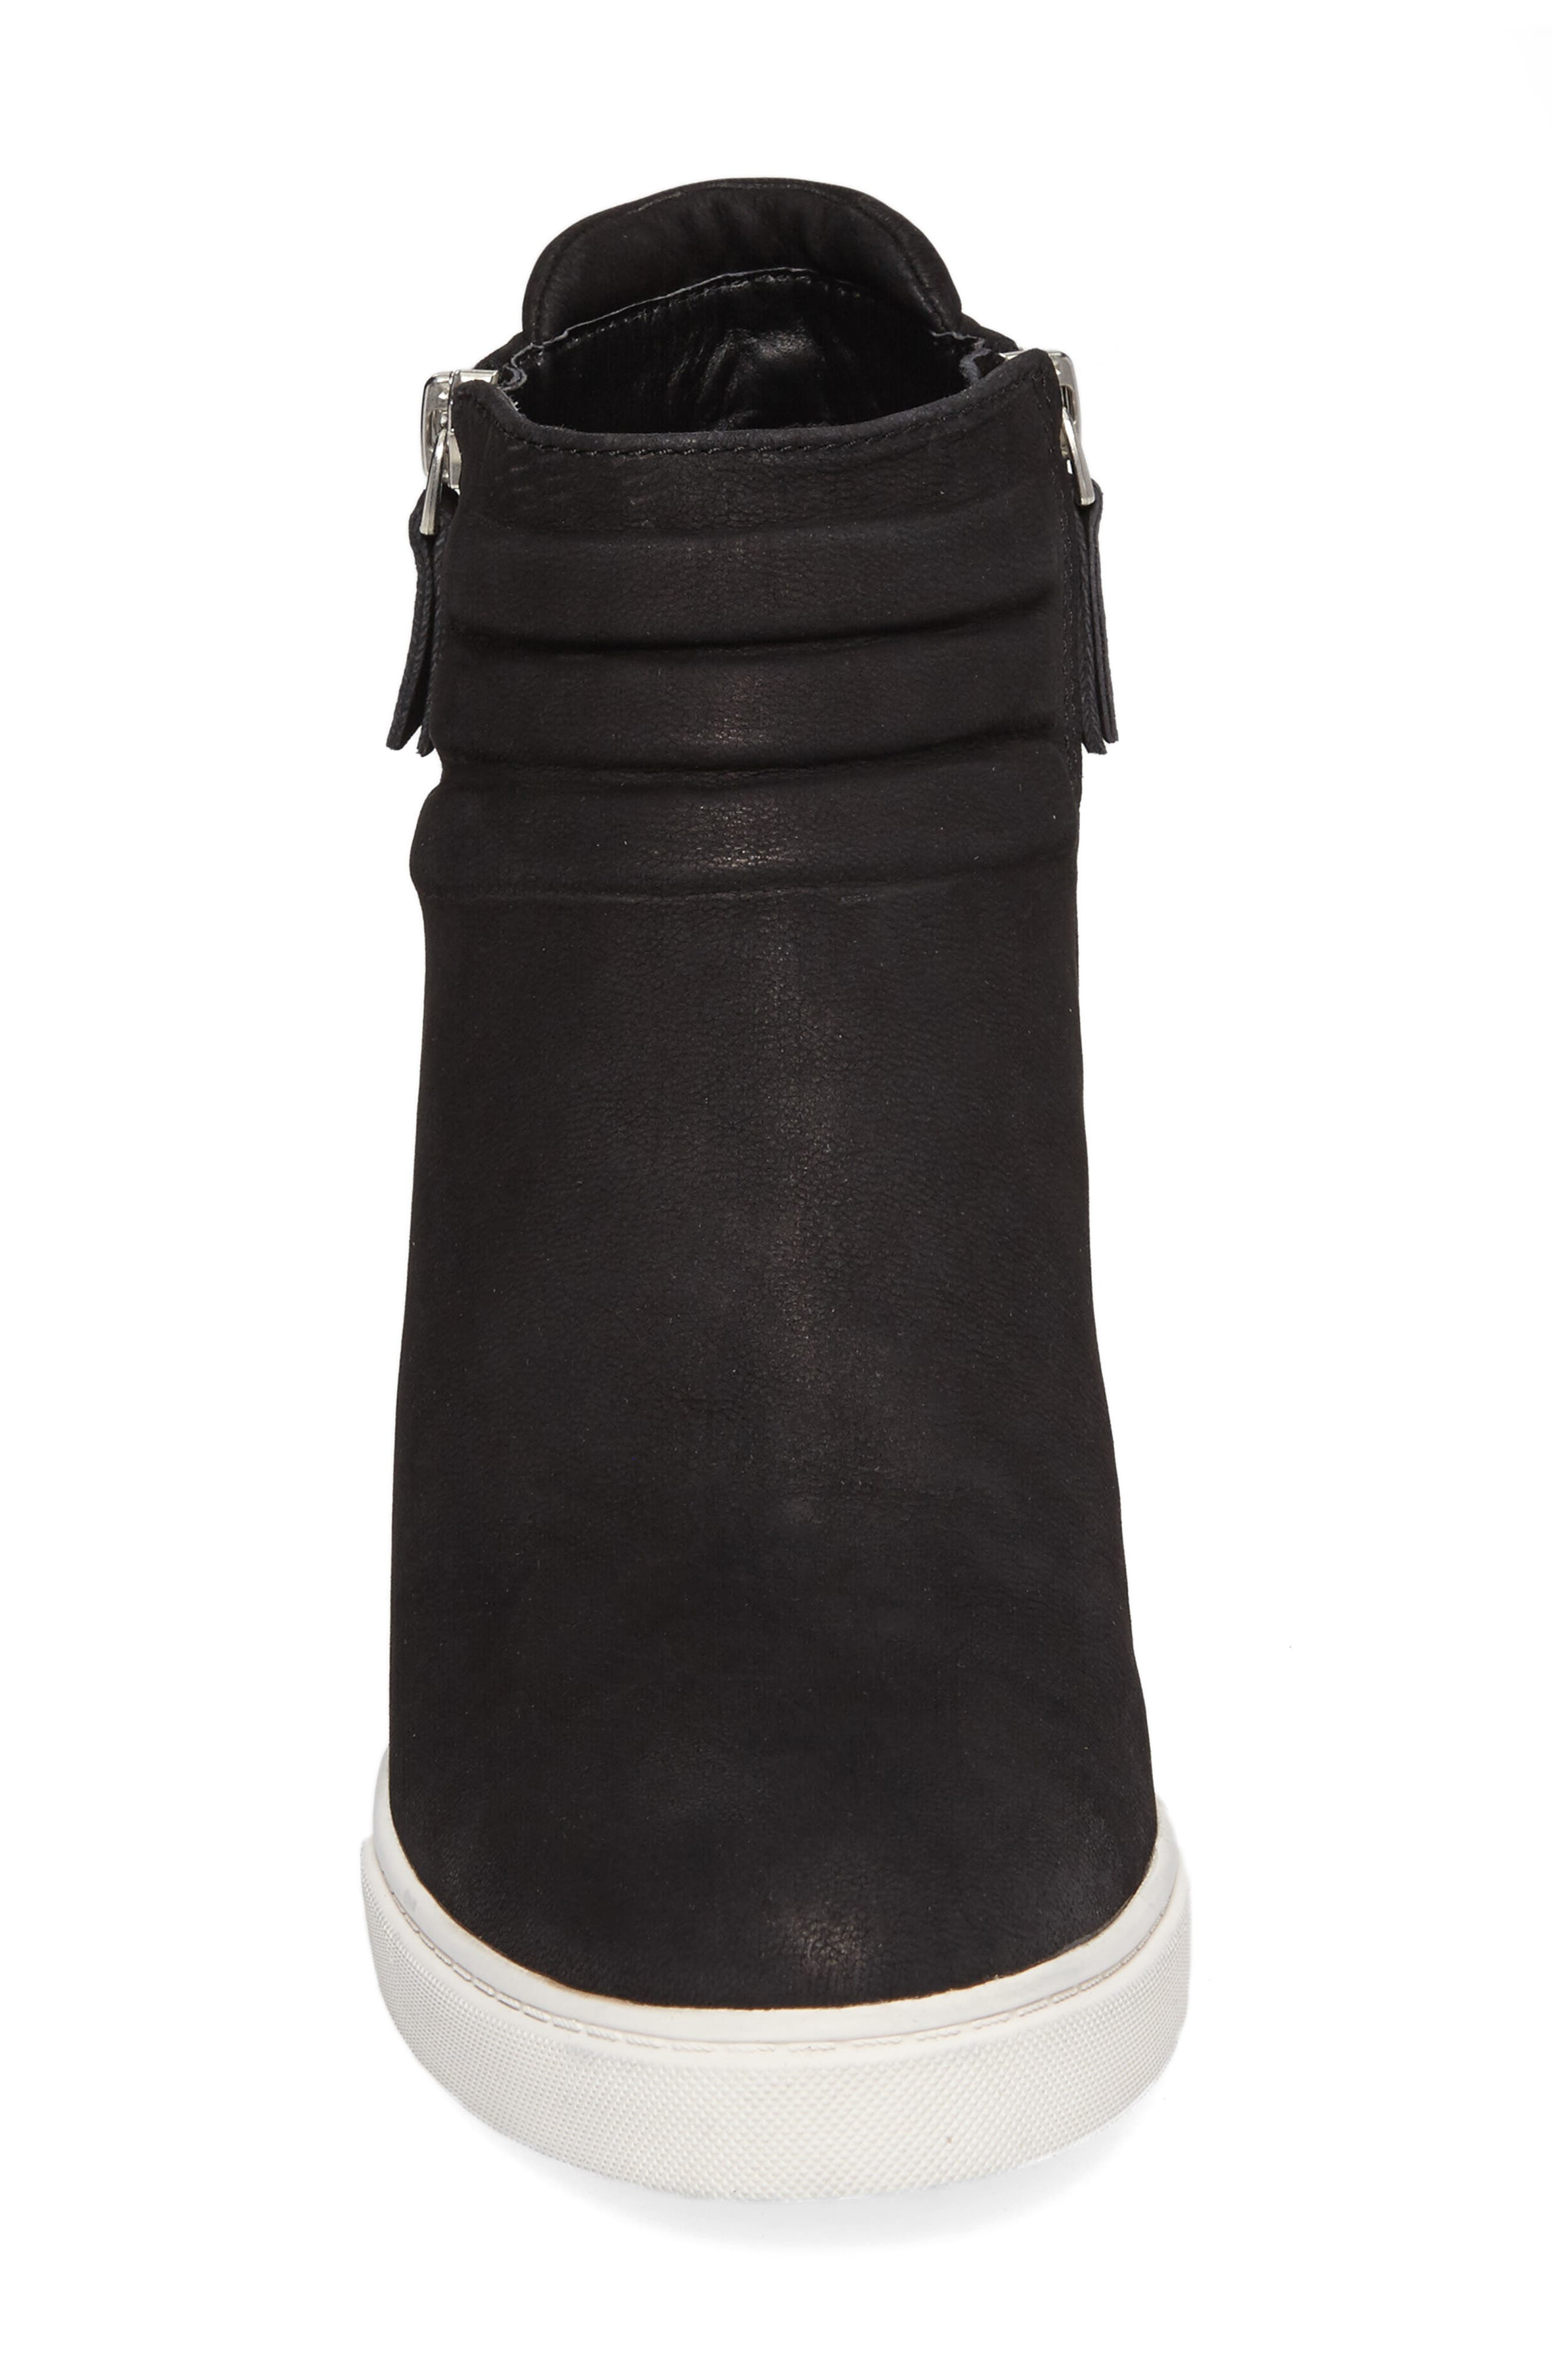 Frieda Wedge Bootie,                             Alternate thumbnail 4, color,                             BLACK LEATHER